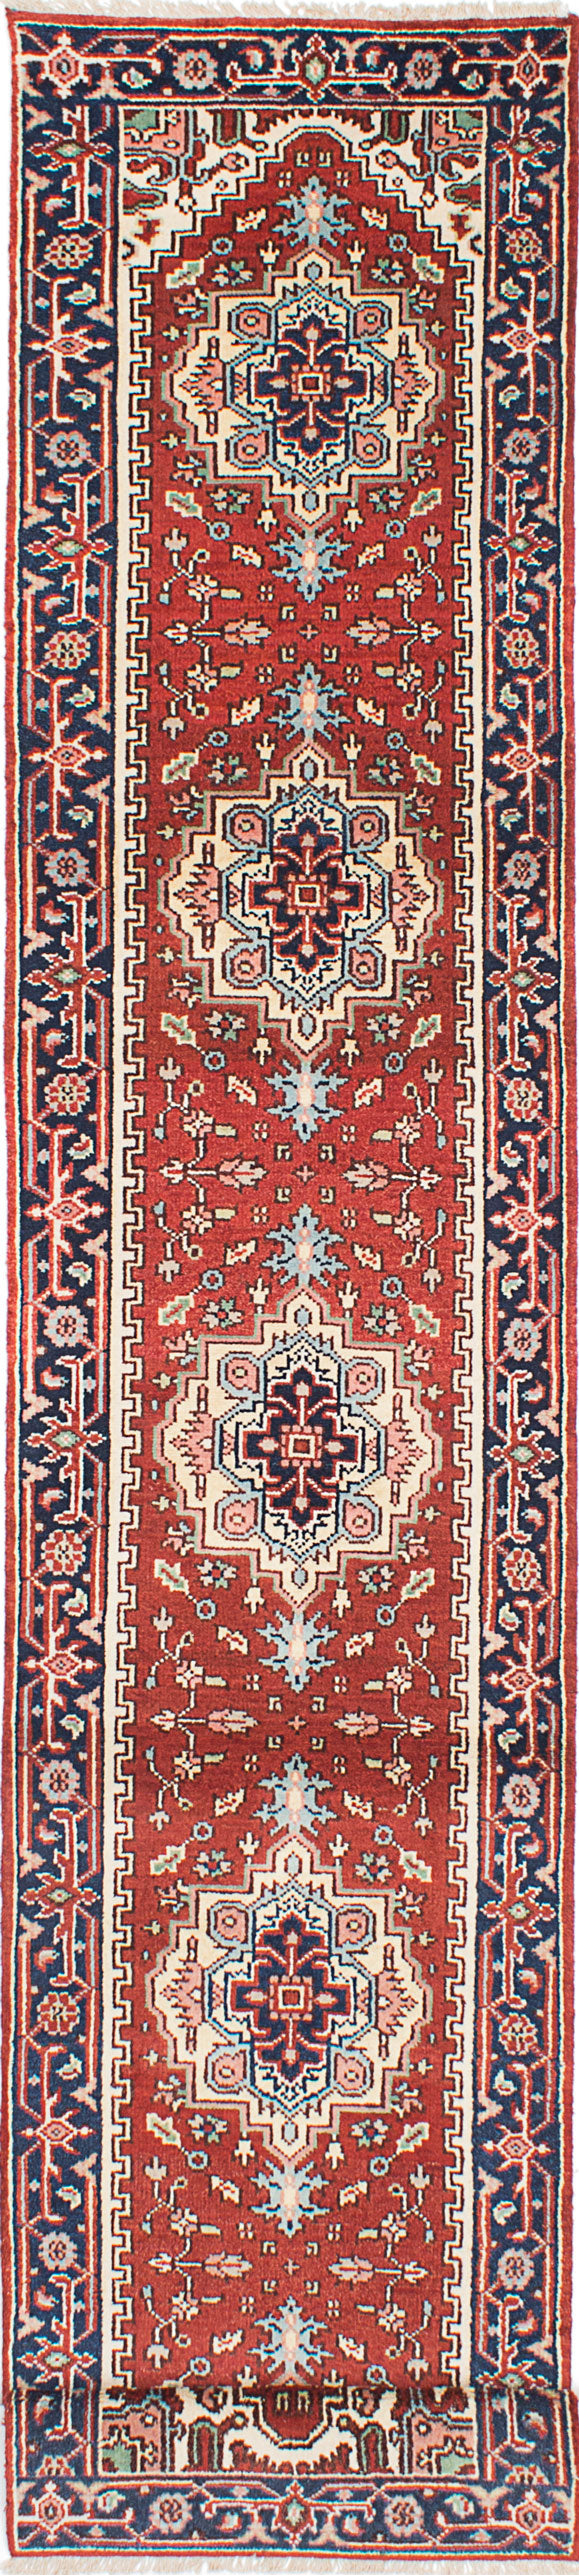 "Hand-knotted Indian Floral  Traditional Serapi-Heritage Runner rug  Dark Orange 2'6 x 16'0"" """